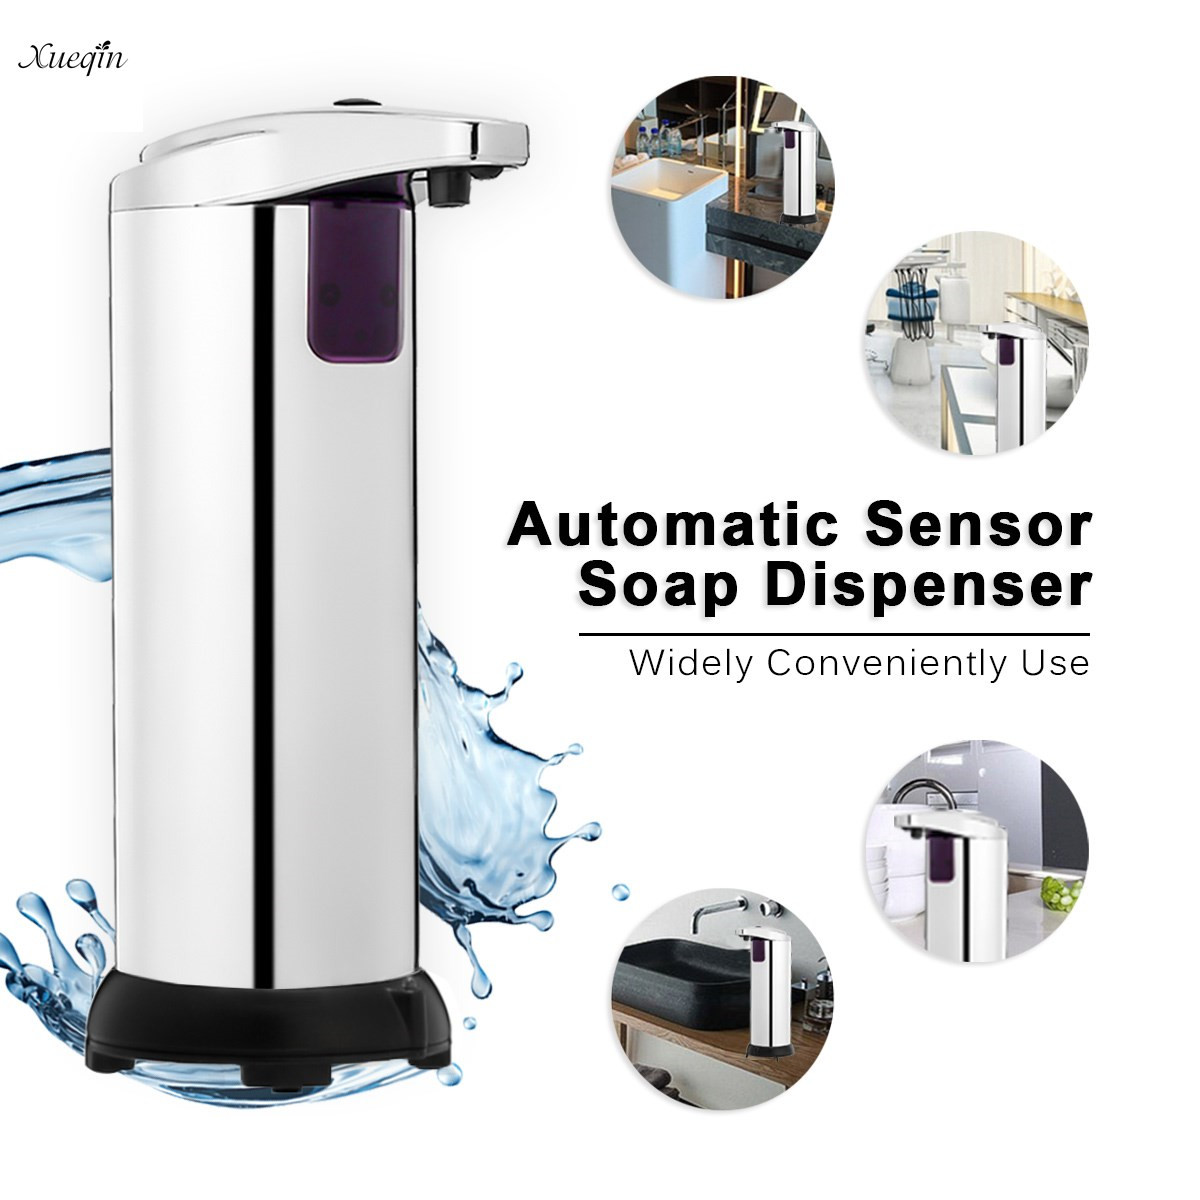 TAPCET Automatic Soap Dispenser IR Sensor Touchless Stainless Steel Hand Soap Dispenser Soap Dispenser Waterproof Base for Kitchen Bathroom, 280ML